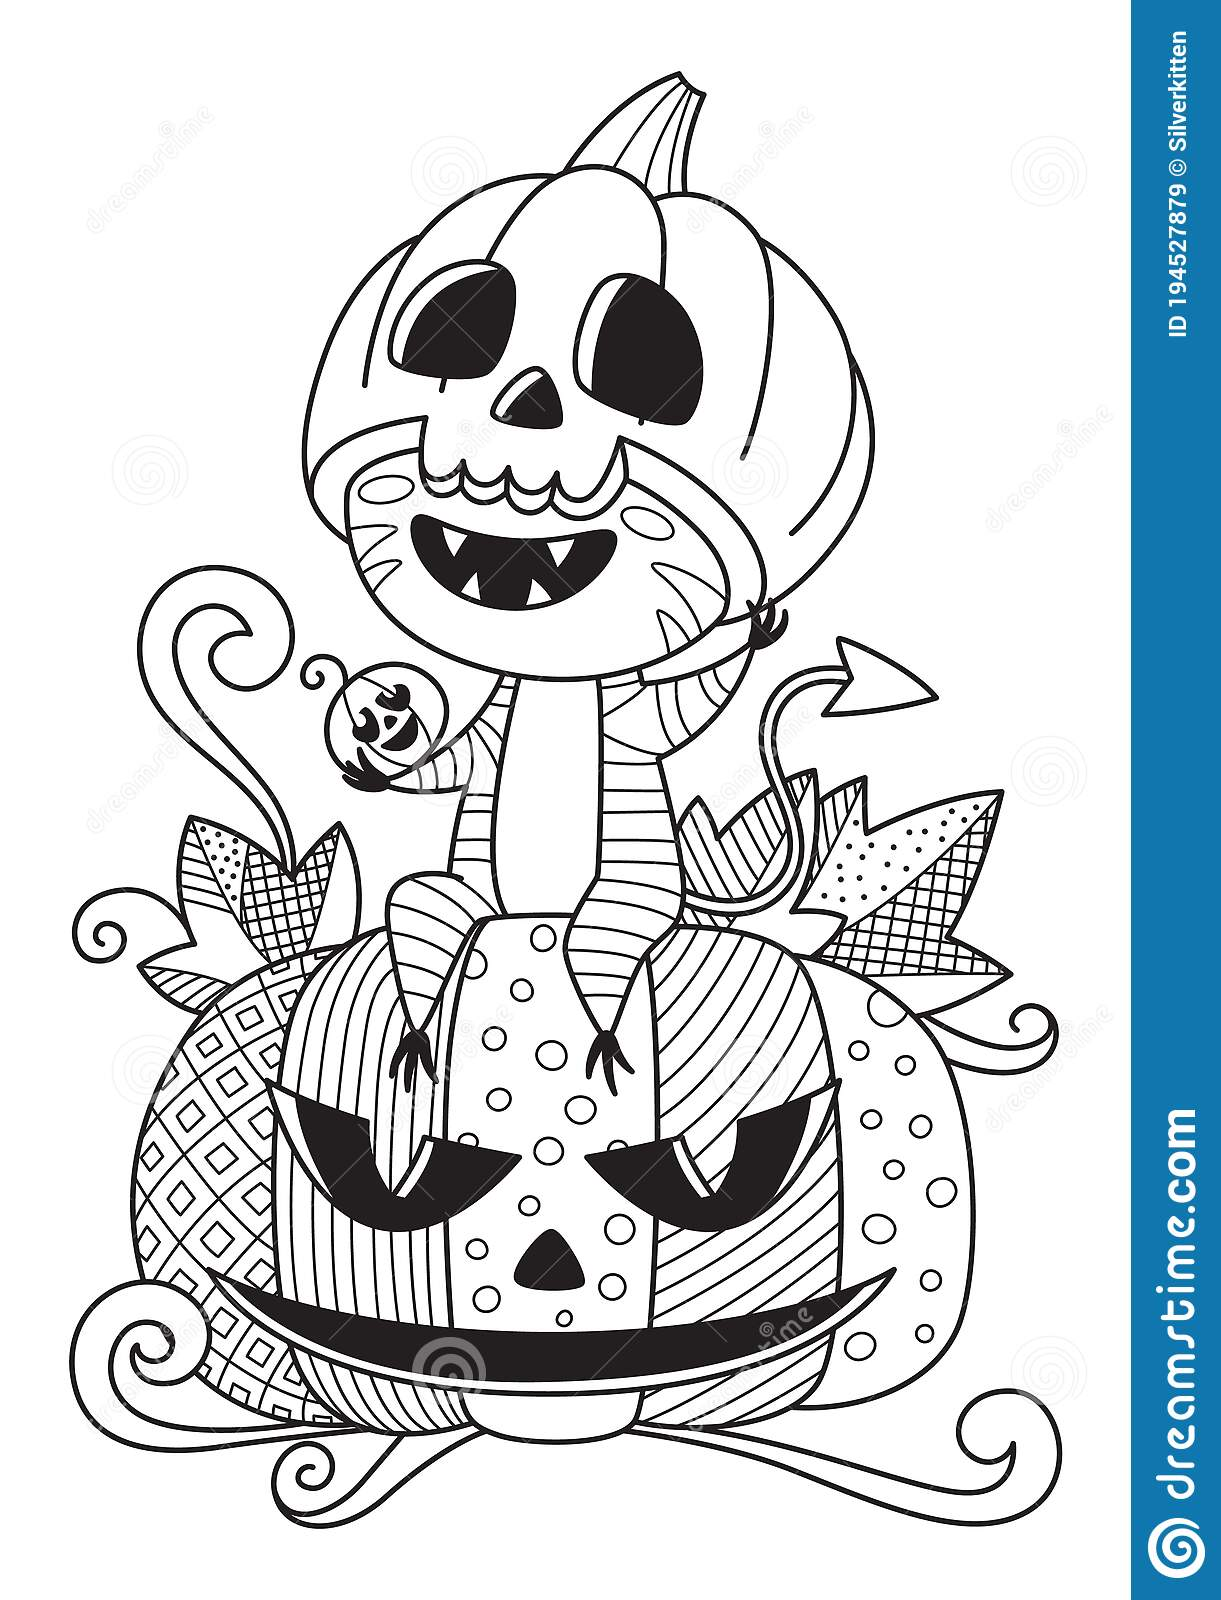 Doodle Halloween Coloring Book Page Cute Monster and Pumpkin. Antistress for Adults and Children. Vector Black and White Stock Illustration - Illustration of background, hand: 194527879